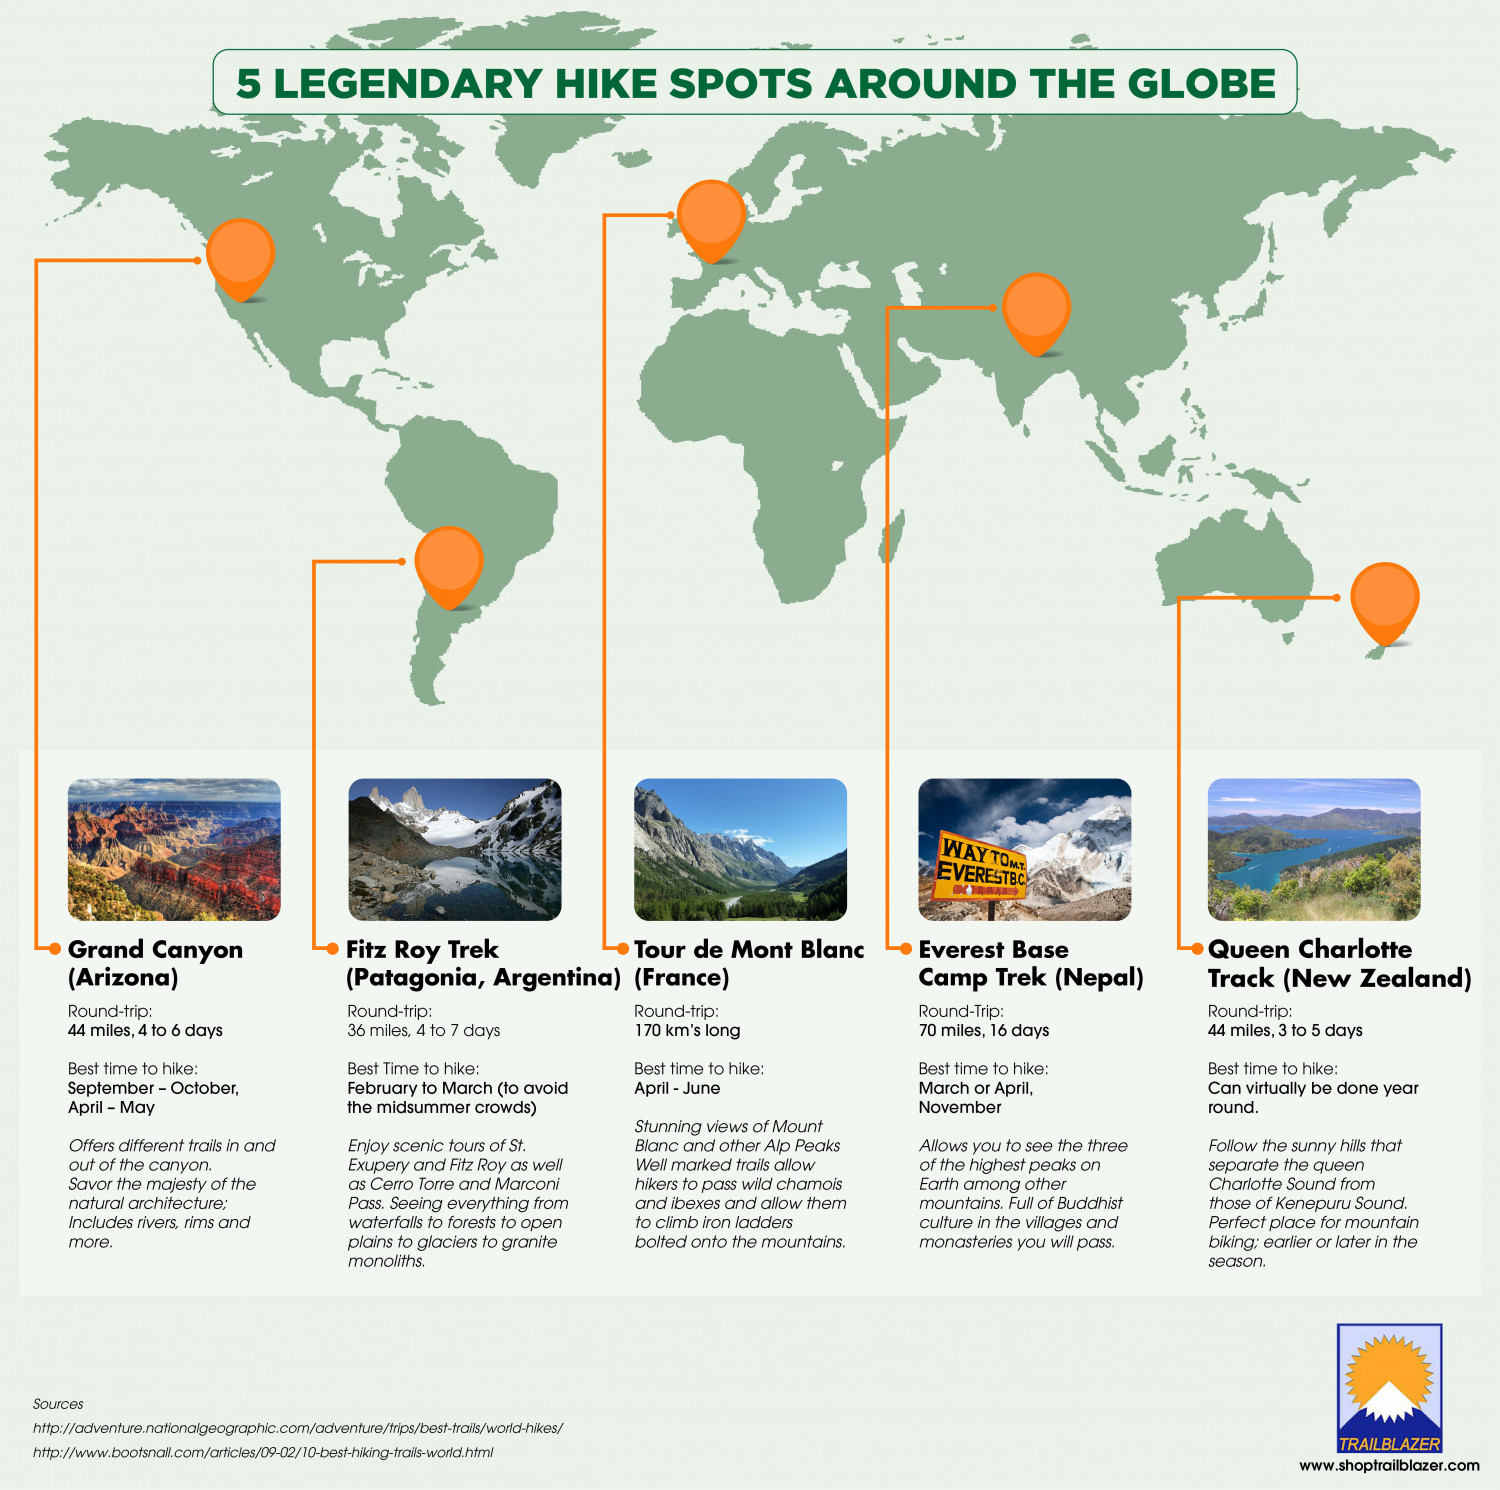 5 Legendary Hike Spots Around the Globe Infographic